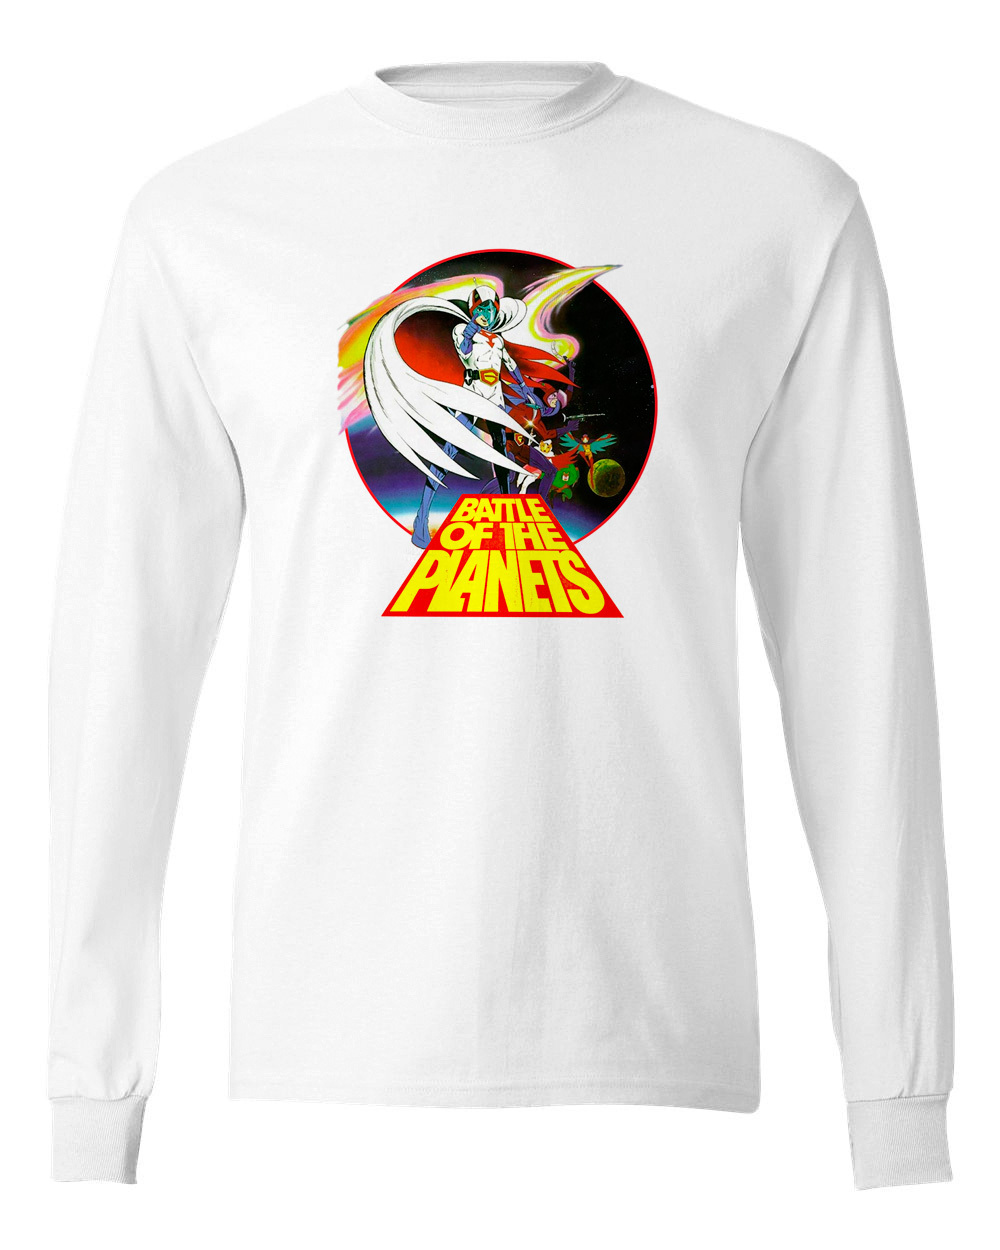 Ci fi japanese animation saturday morning cartoons graphic tee for sale online store long sleeve